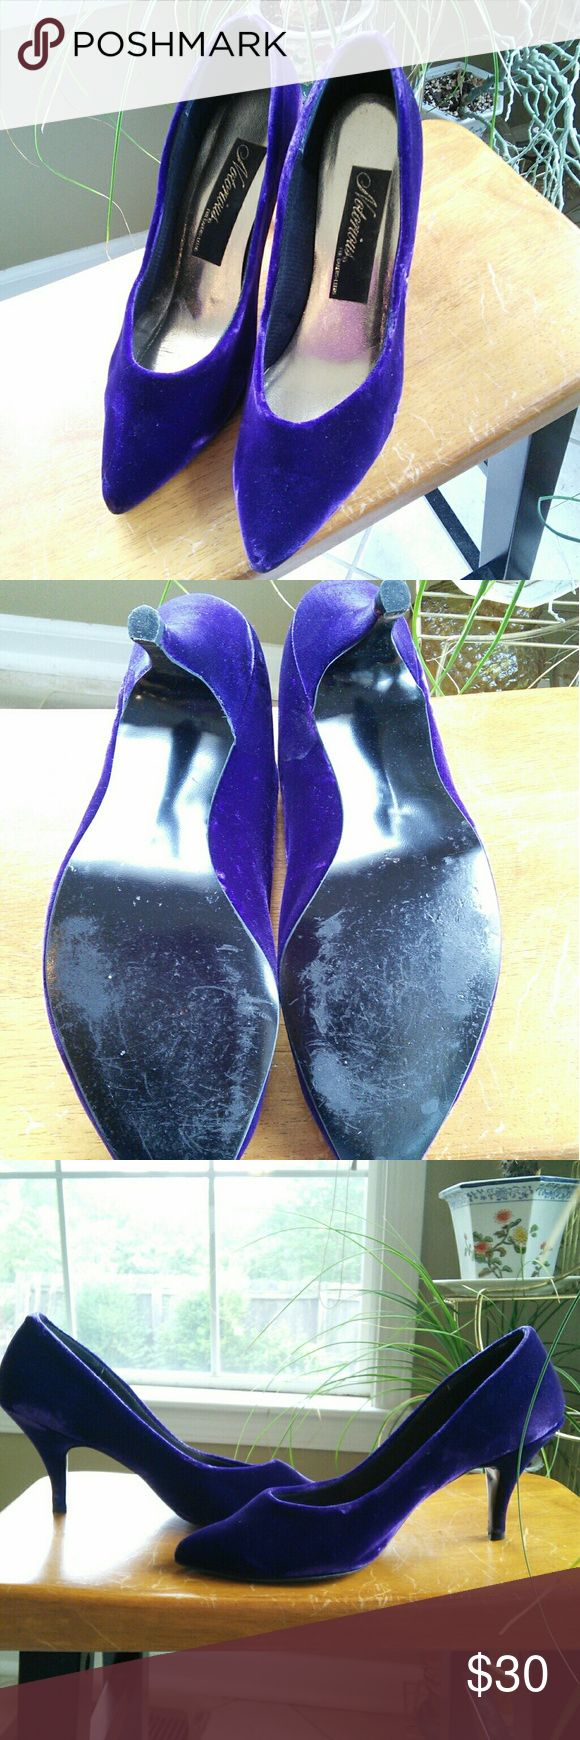 Selling this Notorious purple velvet heels on Poshmark! My username is: tubes1. #shopmycloset #poshmark #fashion #shopping #style #forsale #Notorious #Shoes